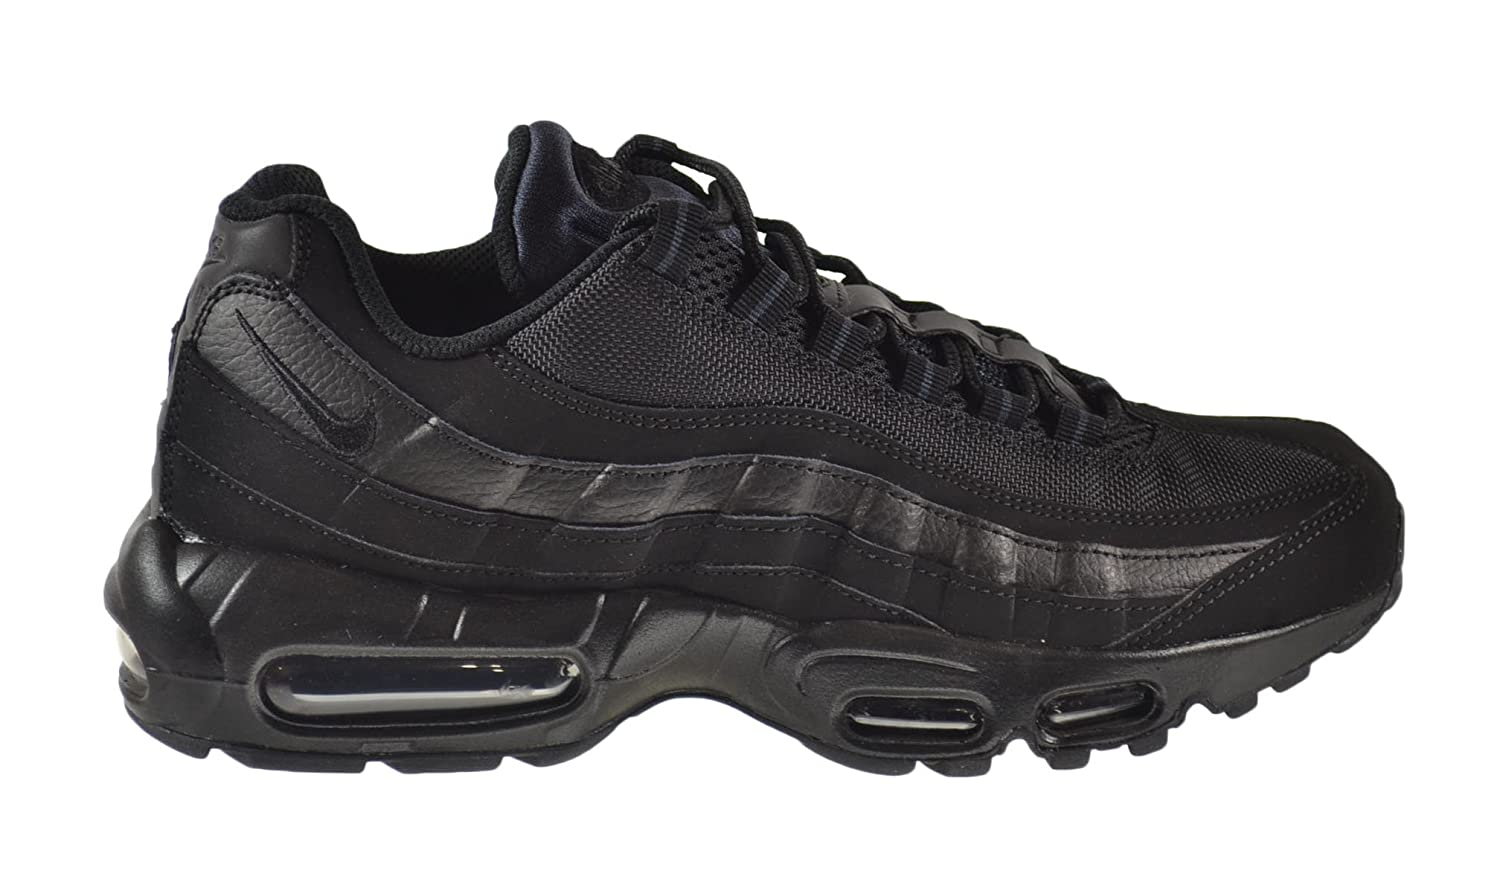 Nike Air Max 95 Men s Shoes Black Black-Anthracite 609048-092 13 D M US